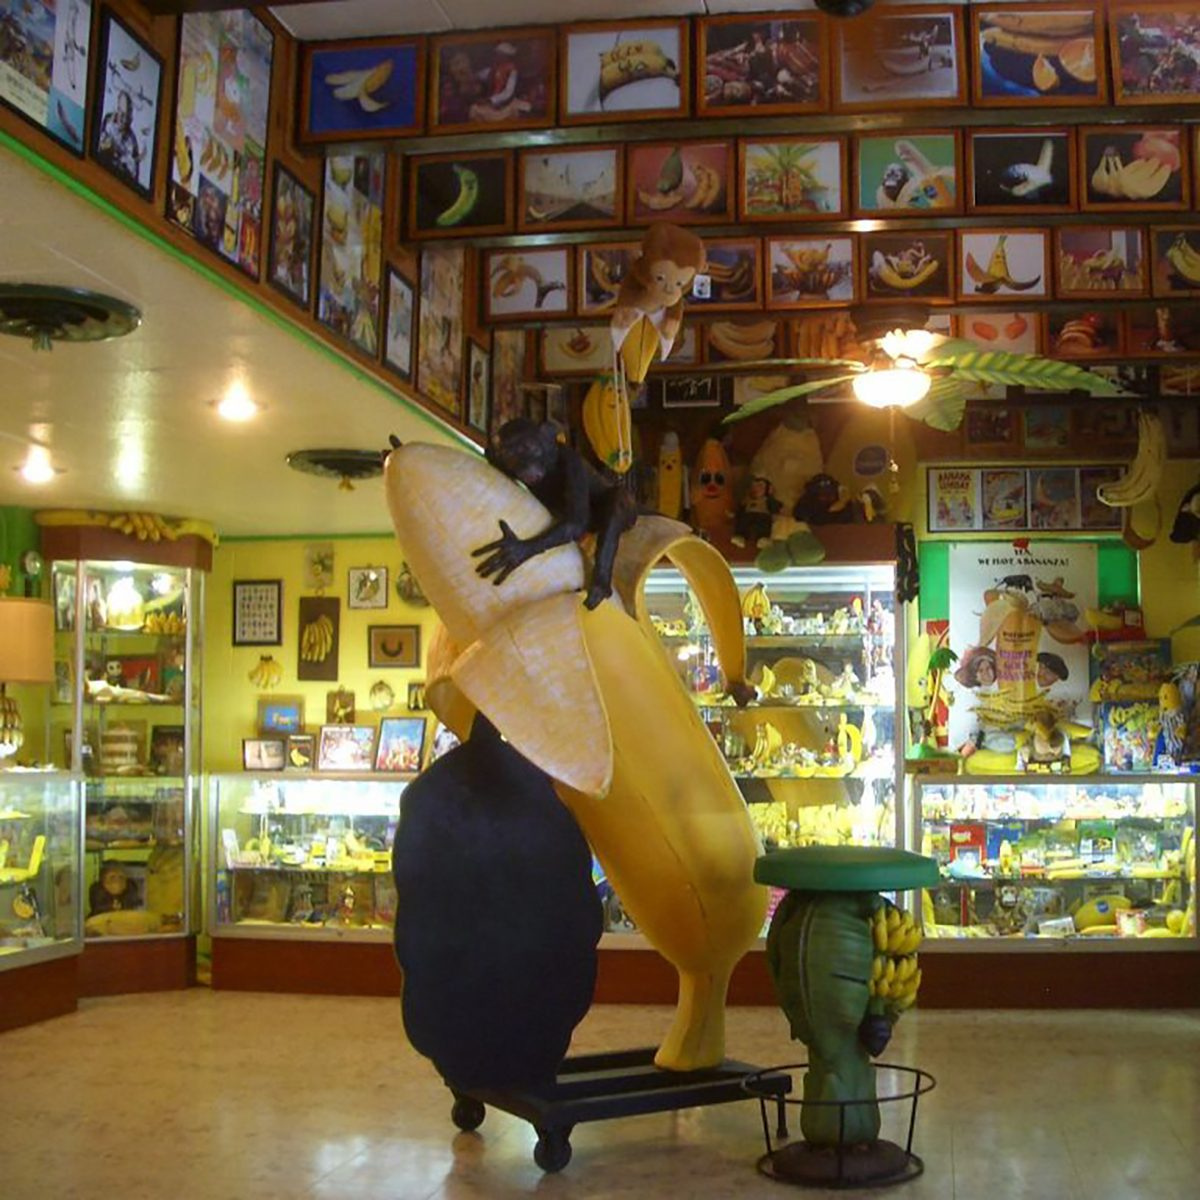 The International Banana Museum